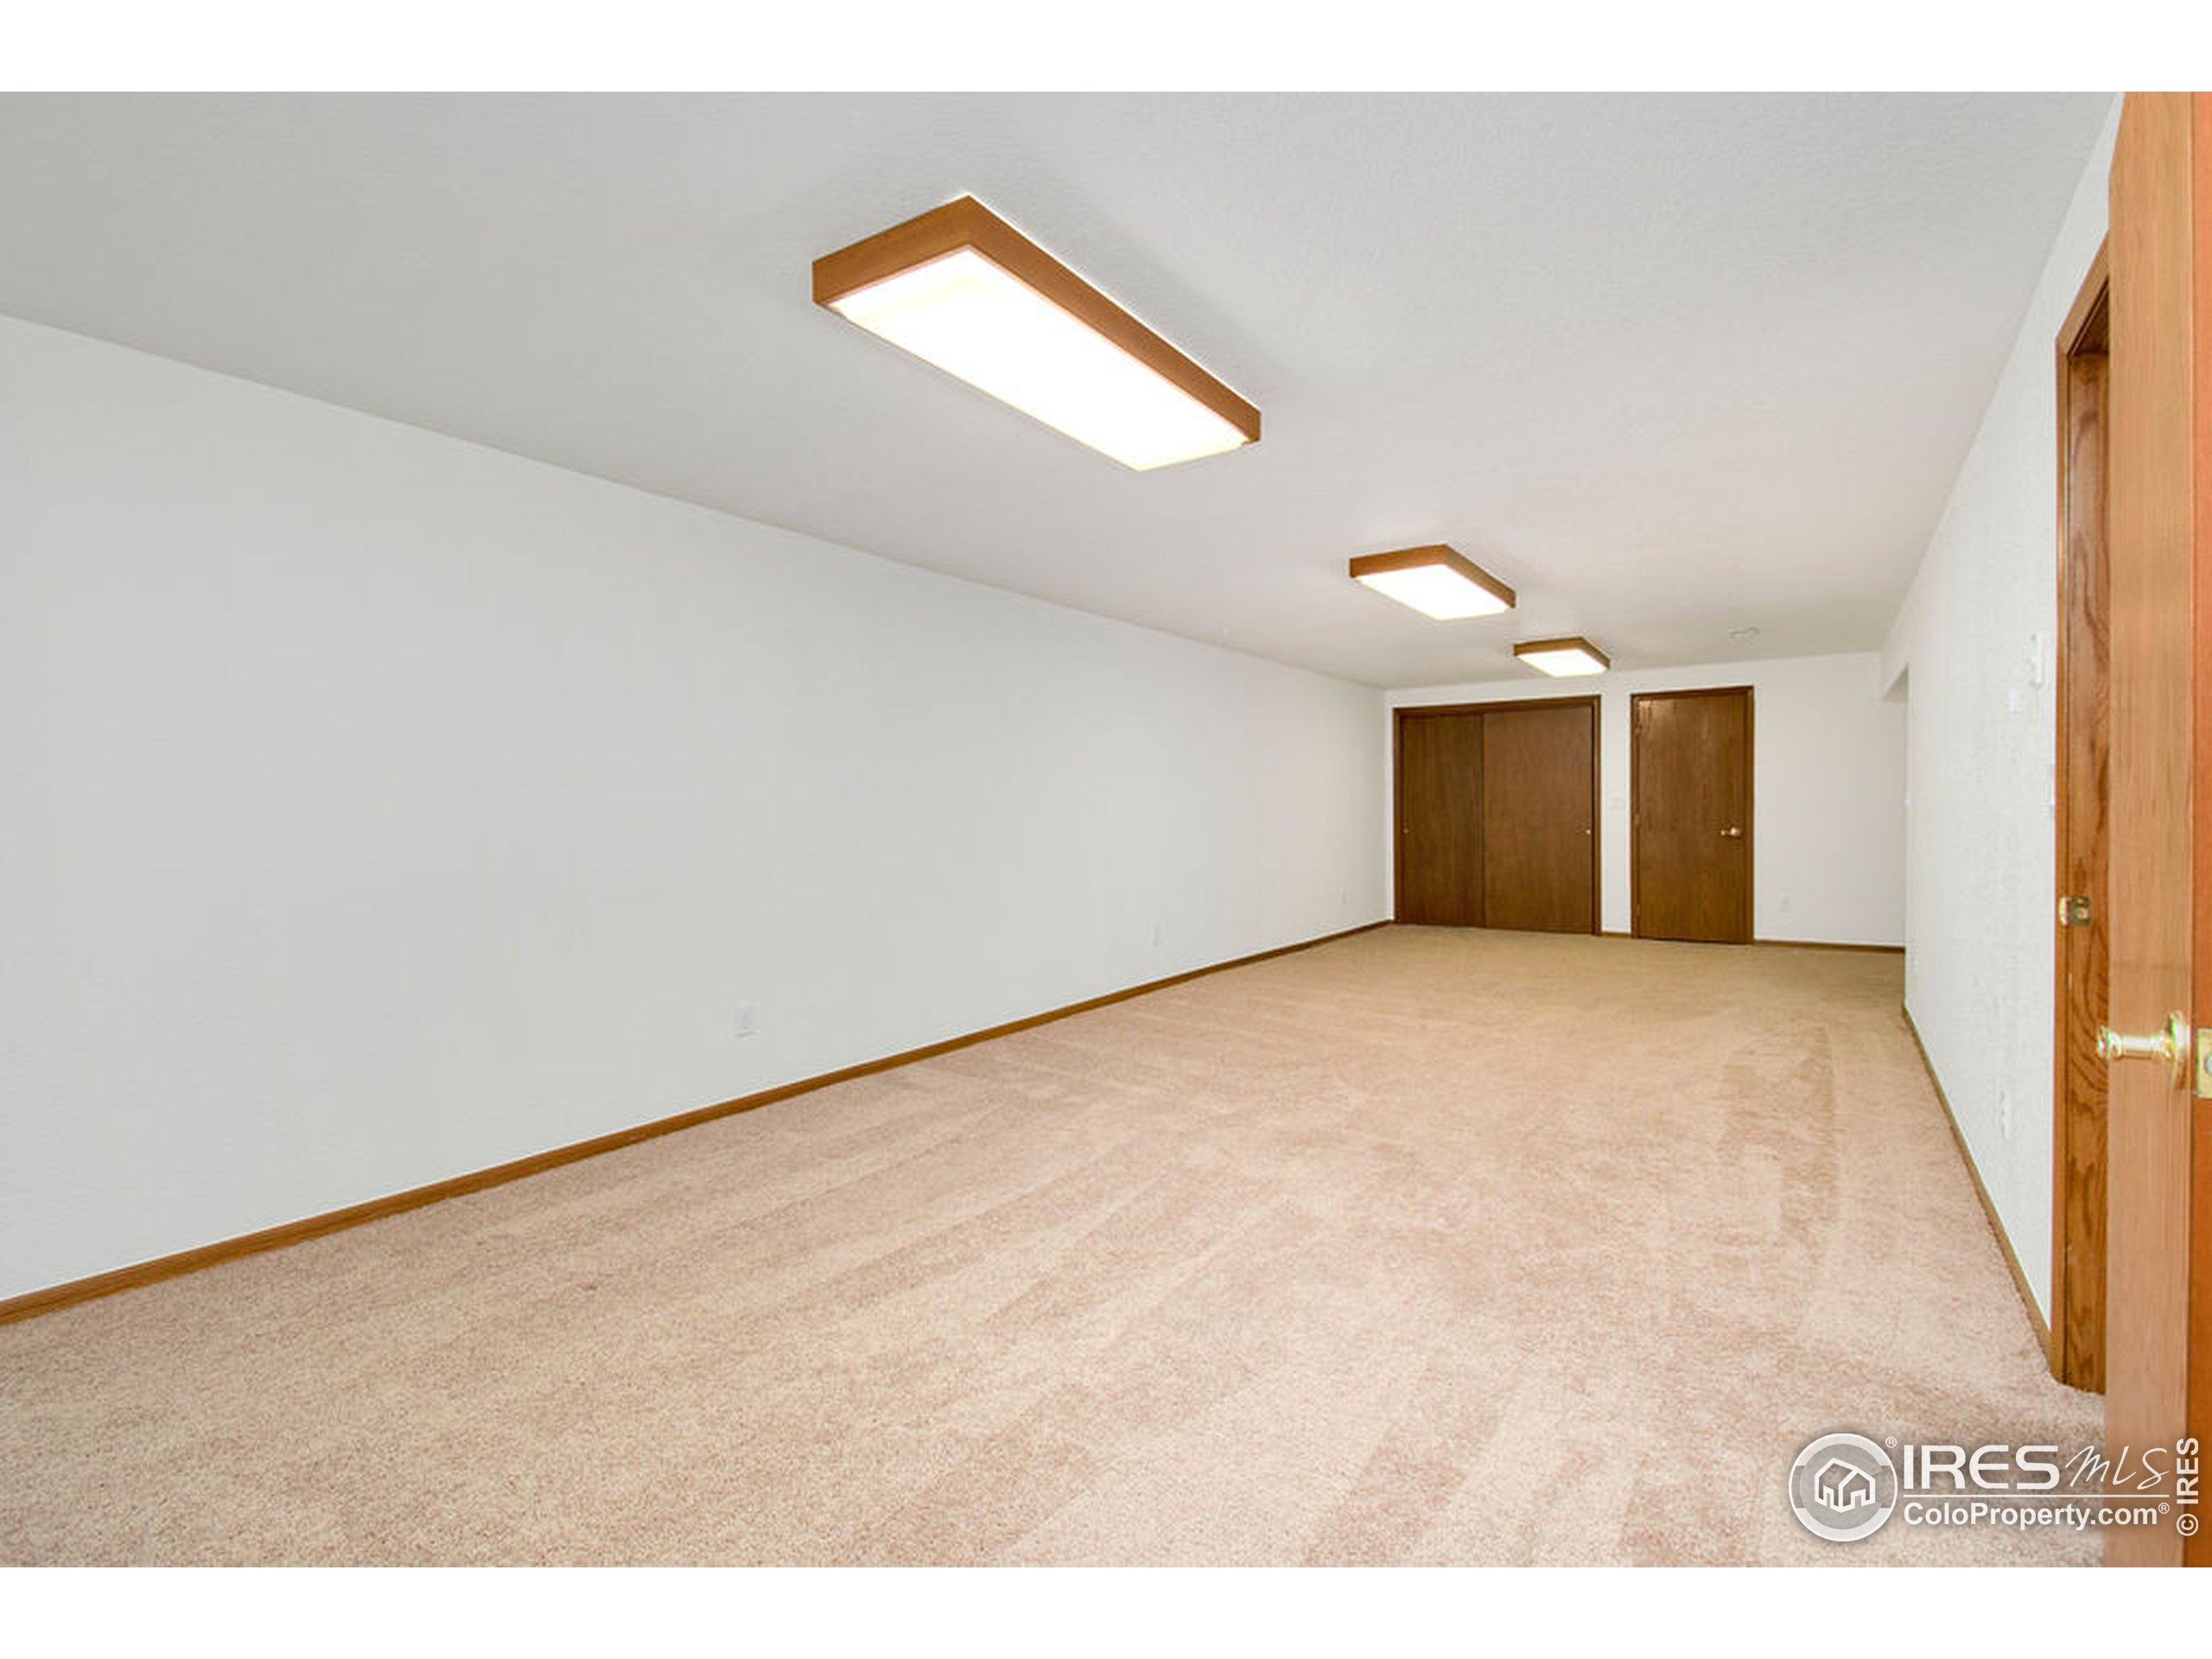 Enjoy Large Basement Living Area. This Patio Home has abundance of square footage!